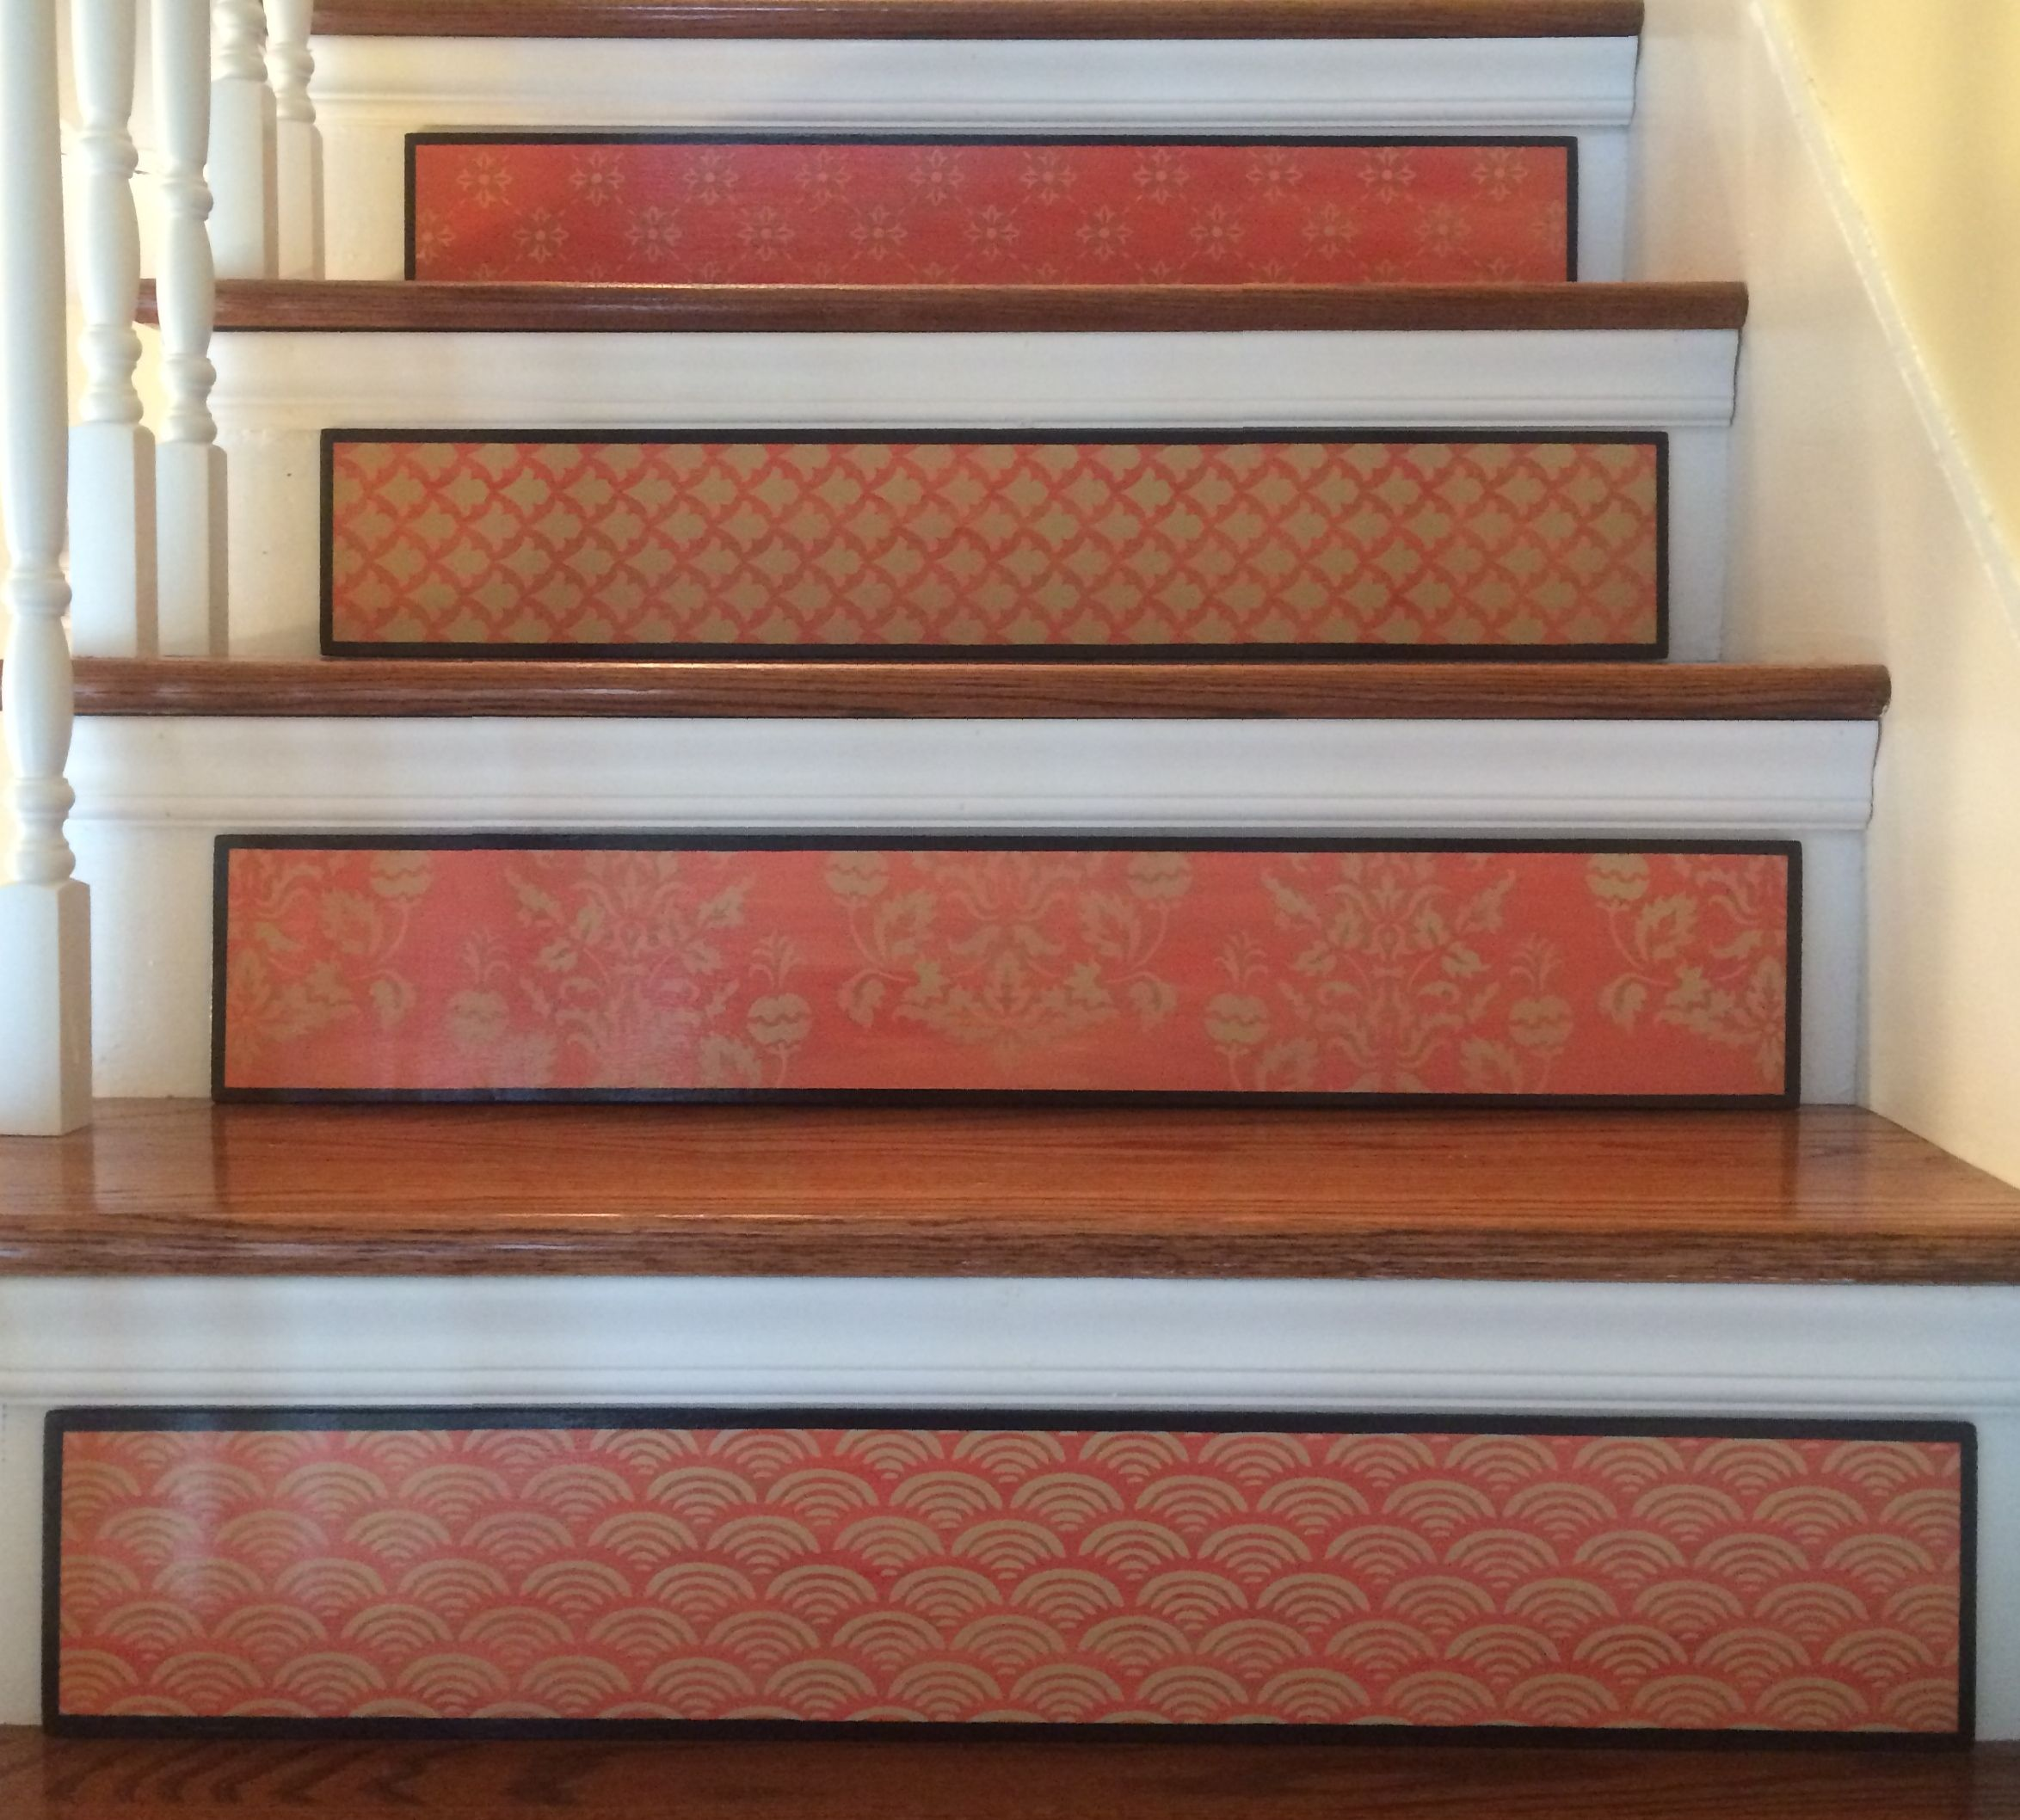 Stair Riser Ideas Stair Riser Art Plaques From Tribute Designs On Etsy The Complete Hand Painted Rouge Collection V Riser Art Painted Stairs Stair Decals